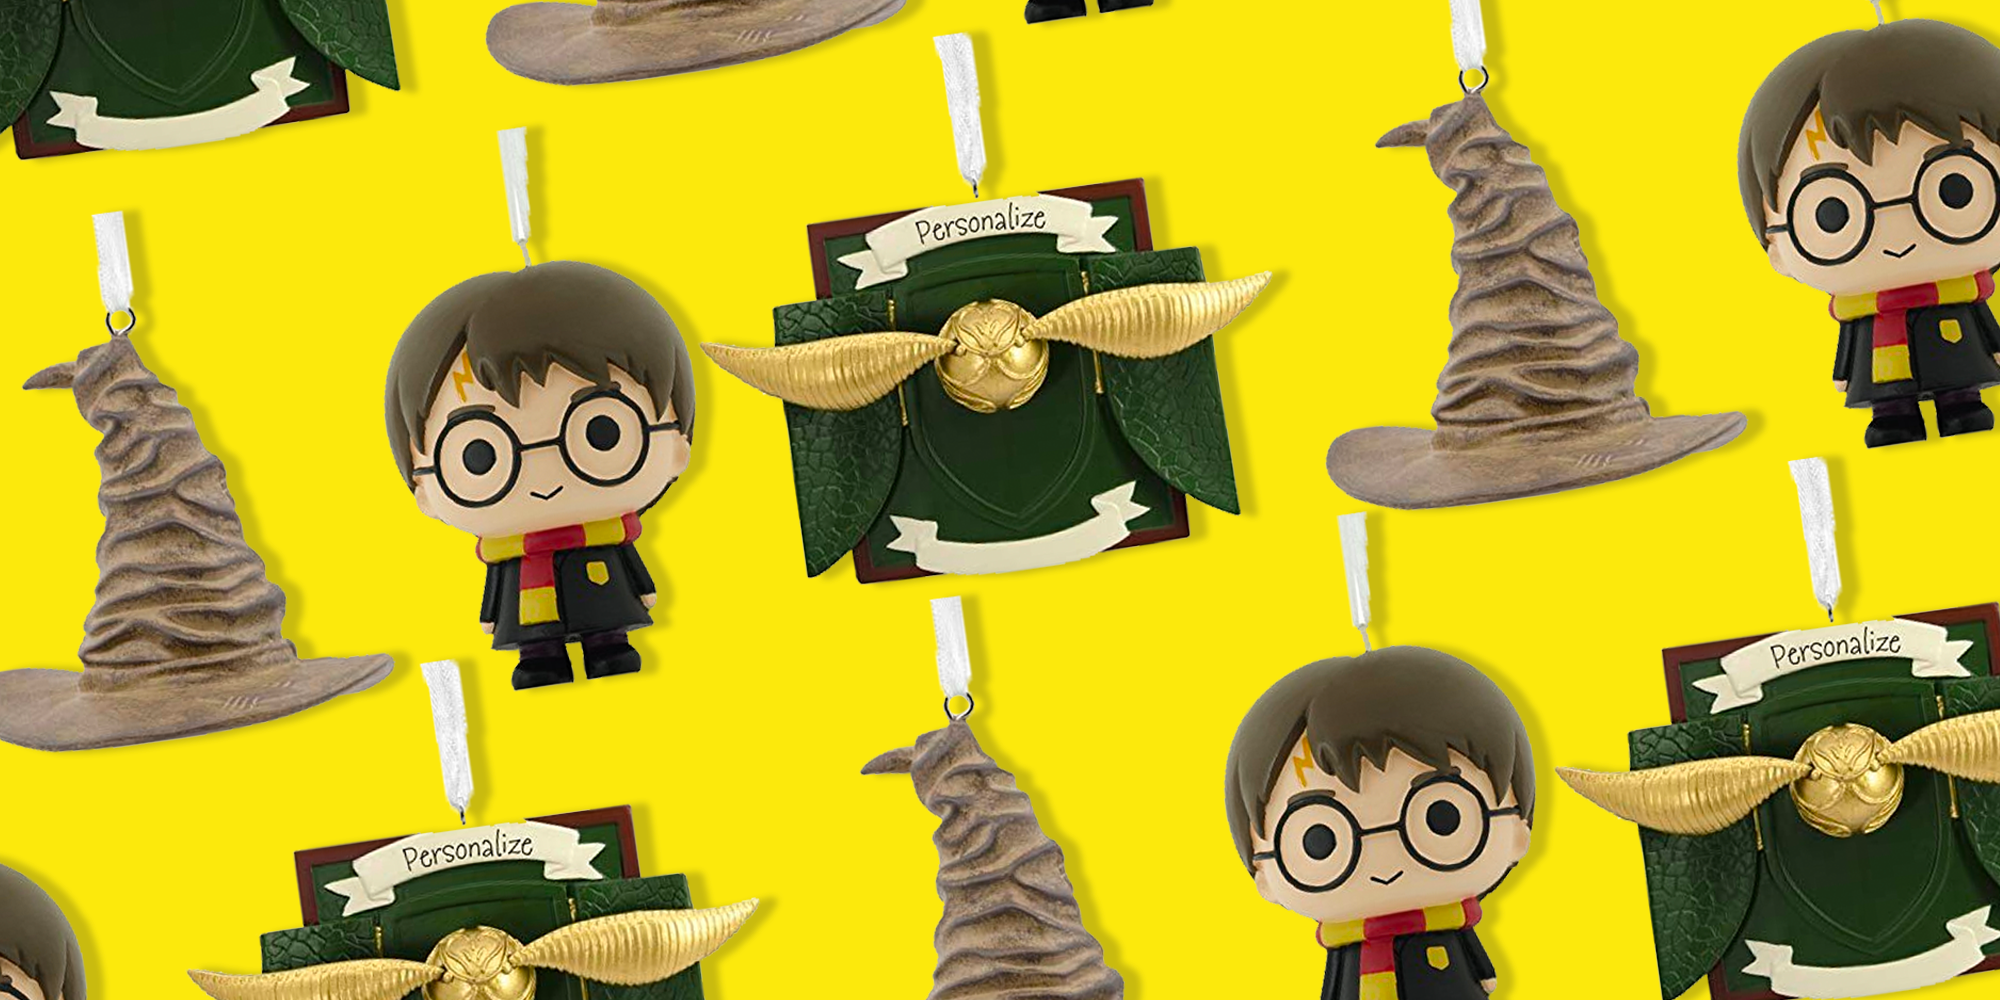 20 Harry Potter Ornaments That'll Add Magic to Your Christmas Tree